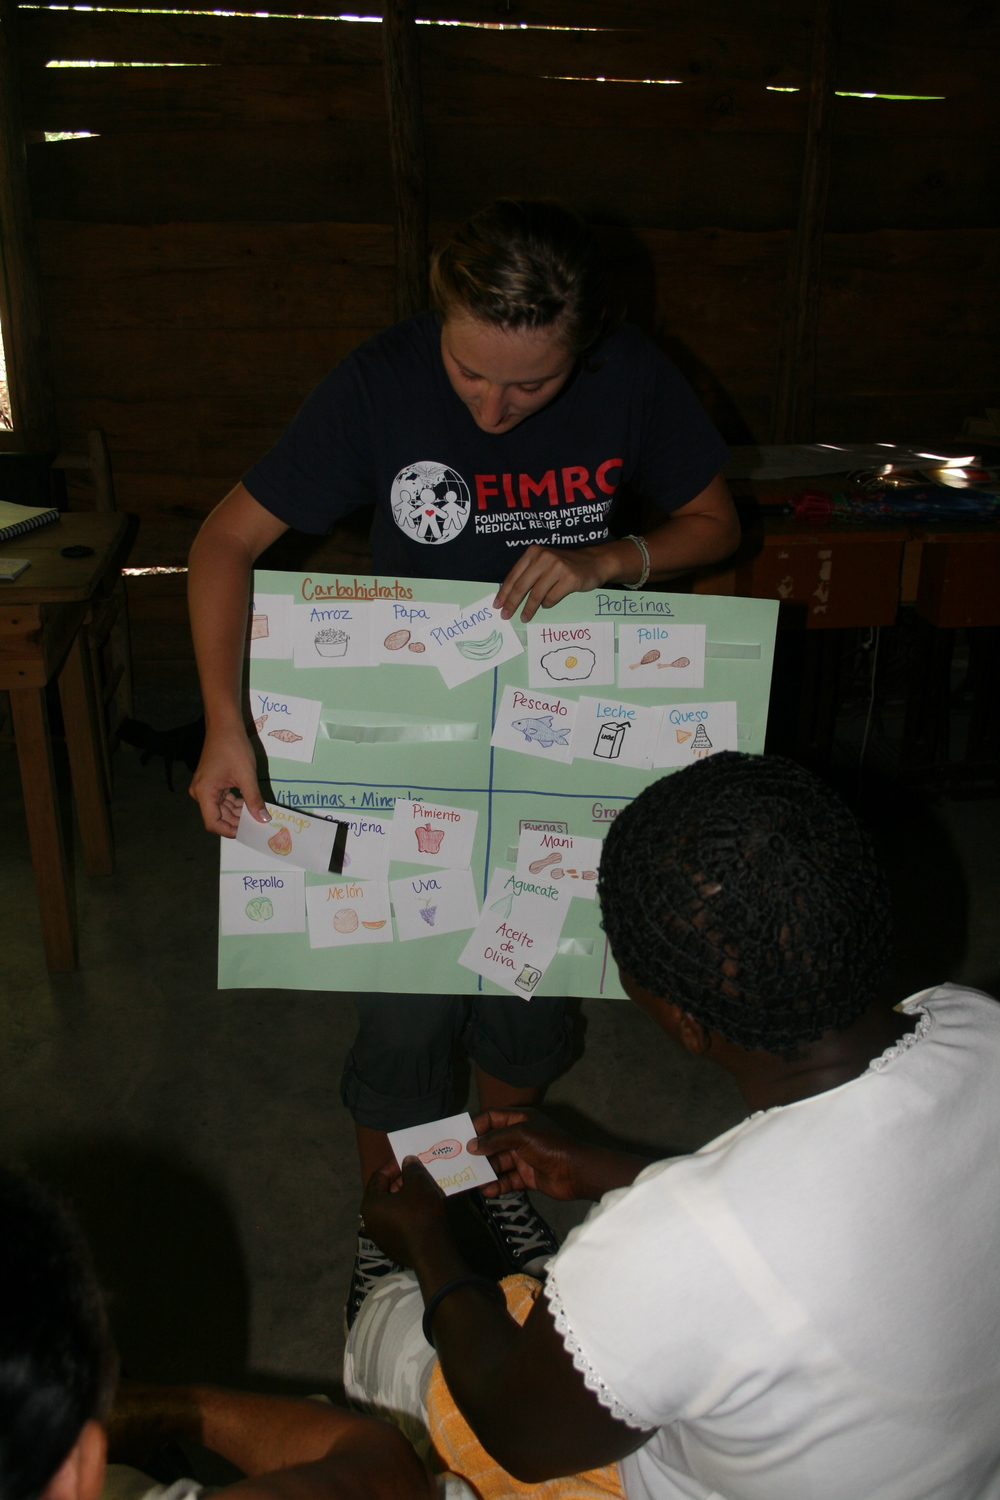 Working on her Ambassador project - a nutrition program in the Dominican Republic!